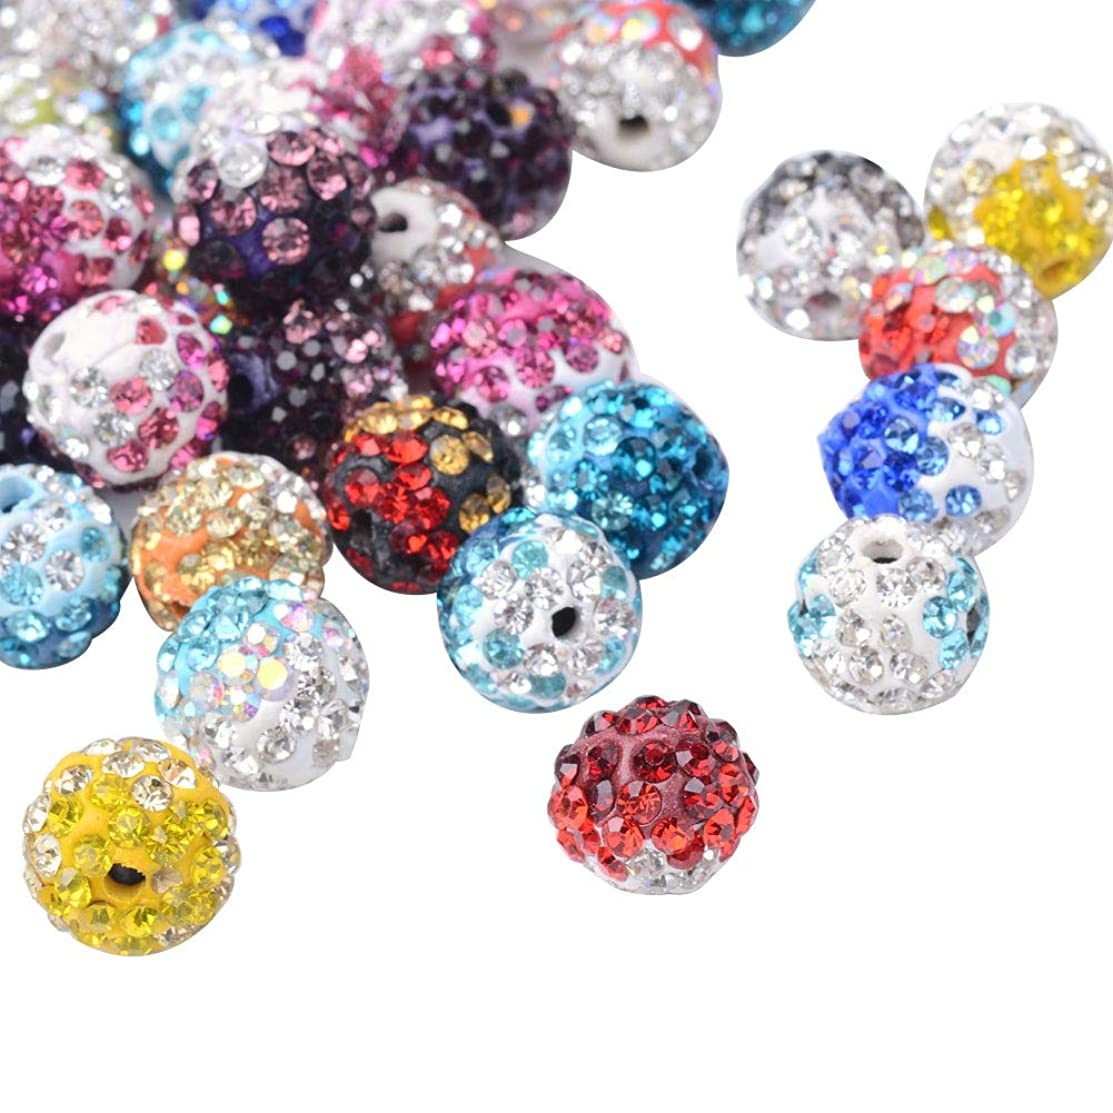 PH PandaHall About 100 Pcs 10mm Clay Pave Disco Ball Czech Crystal Rhinestone Shamballa Beads Charm Round Spacer Bead for Jewelry Making Mixed Colors